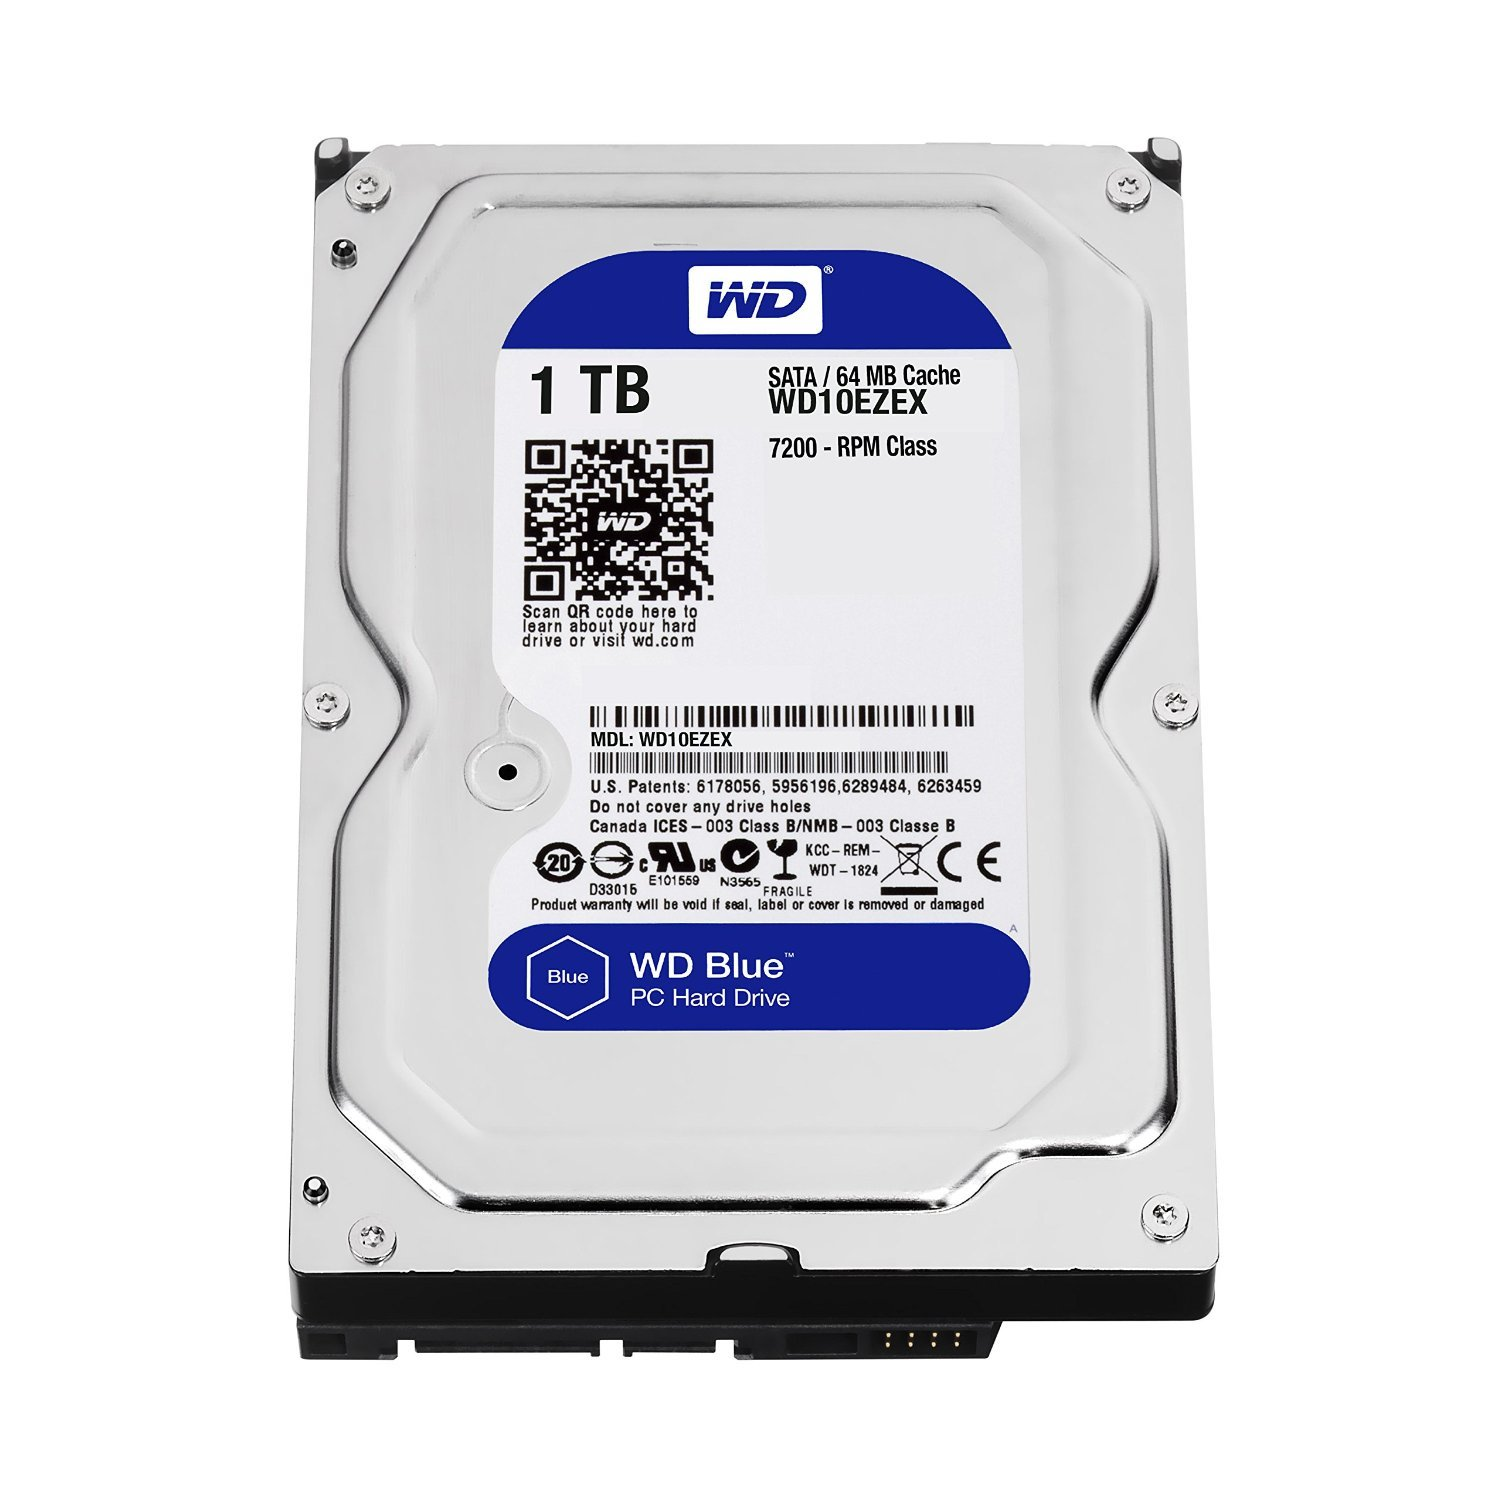 WD Blue 1TB SATA 6 Gb/s 7200 RPM 64MB Cache